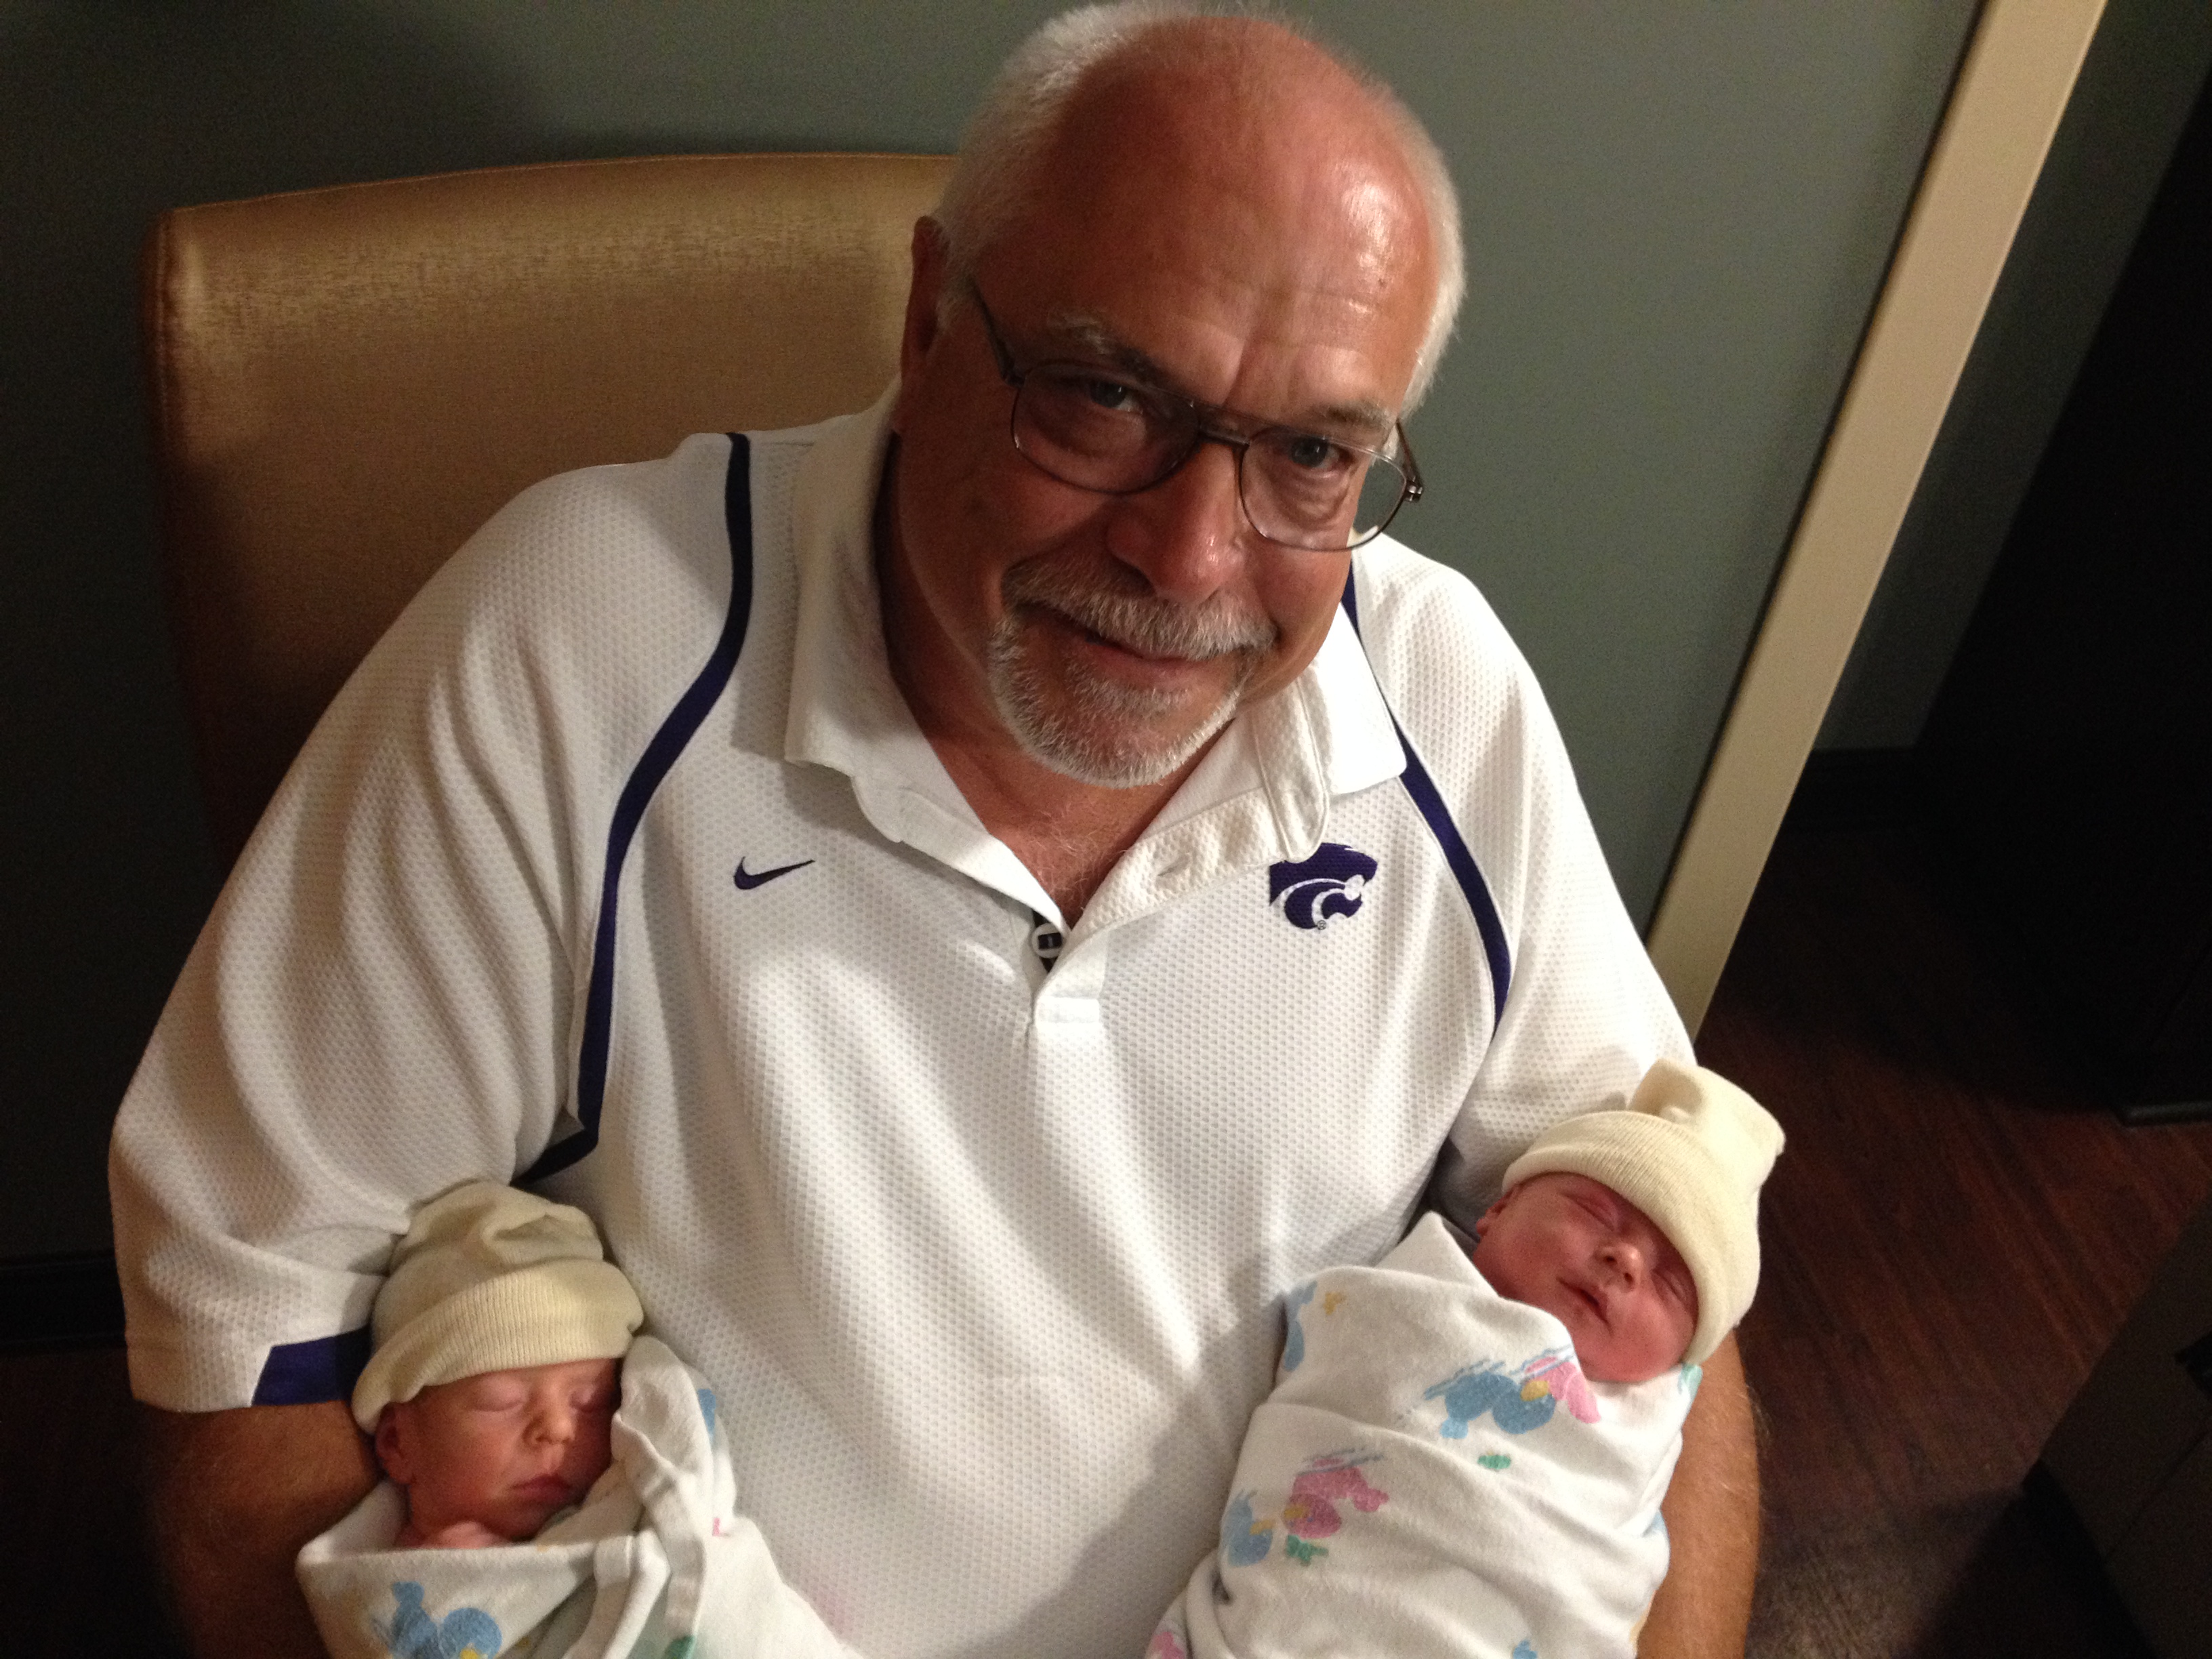 Lola, Ruby, and Grandpa Jerry